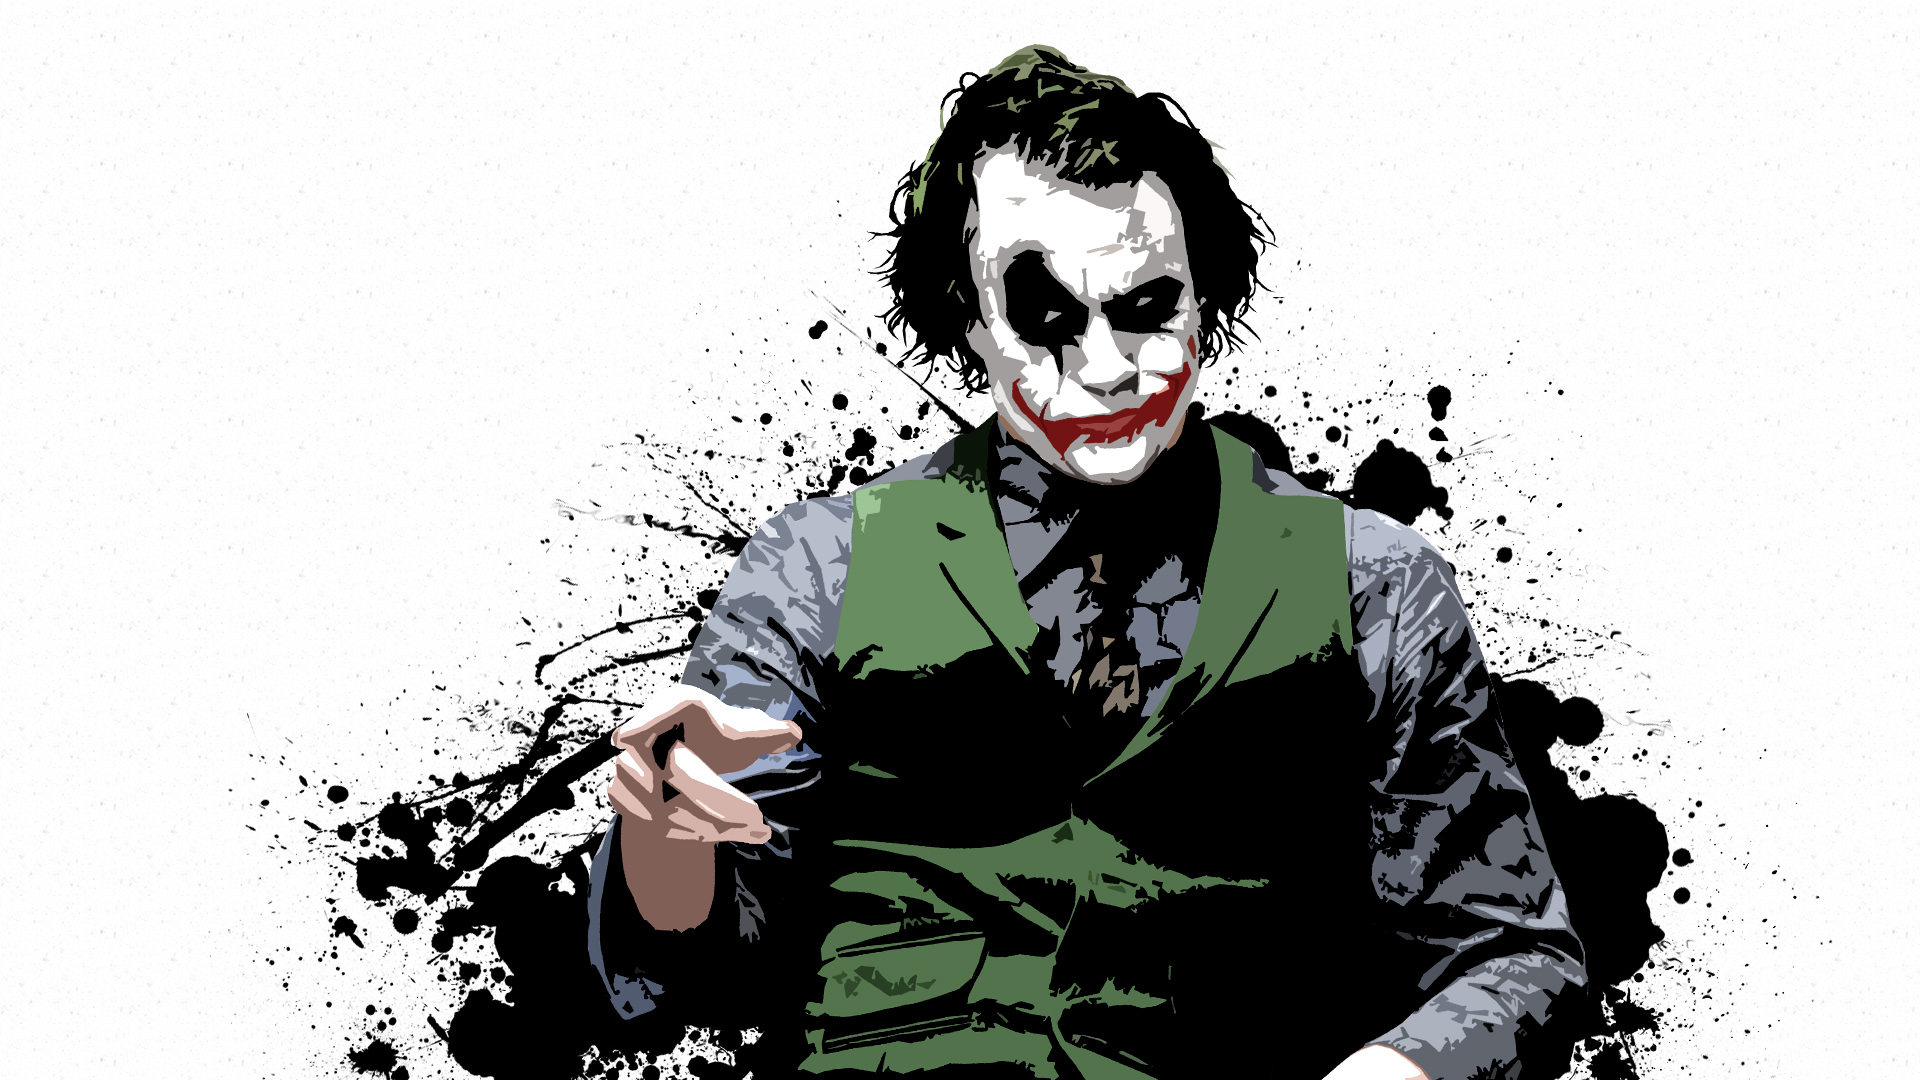 The Dark Knight HD Wallpaper